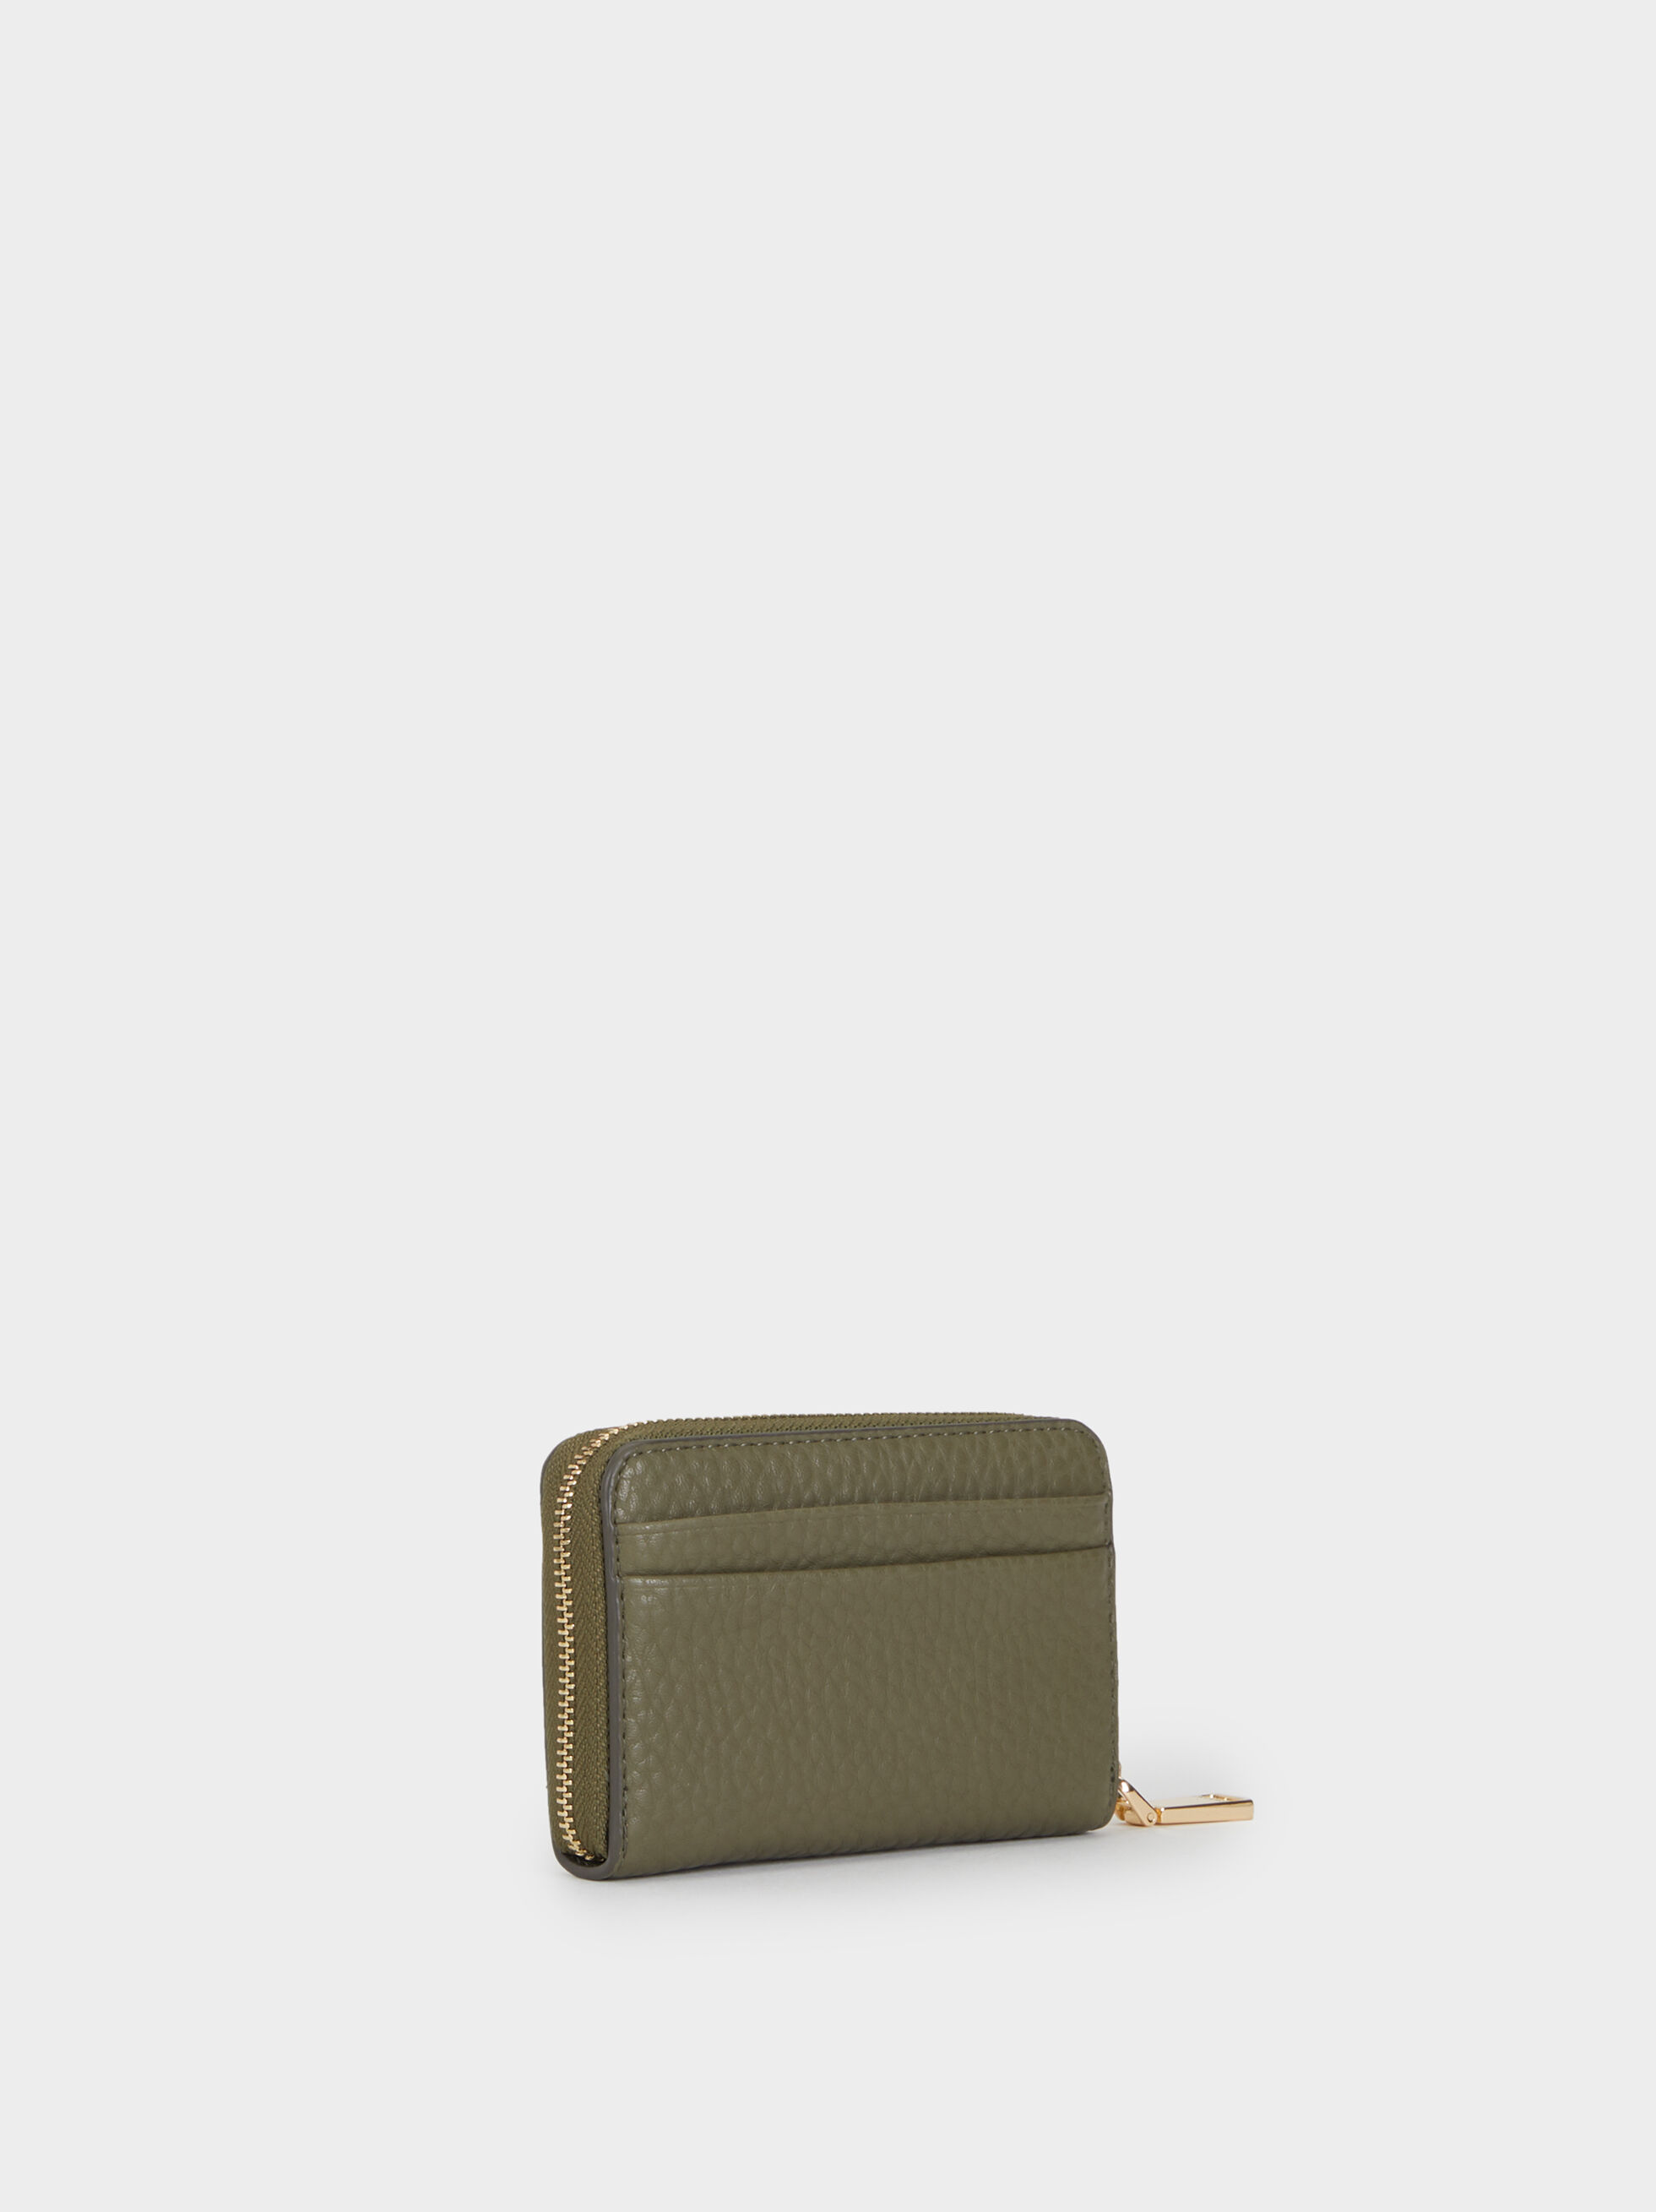 Small Faux Leather Purse, Khaki, hi-res